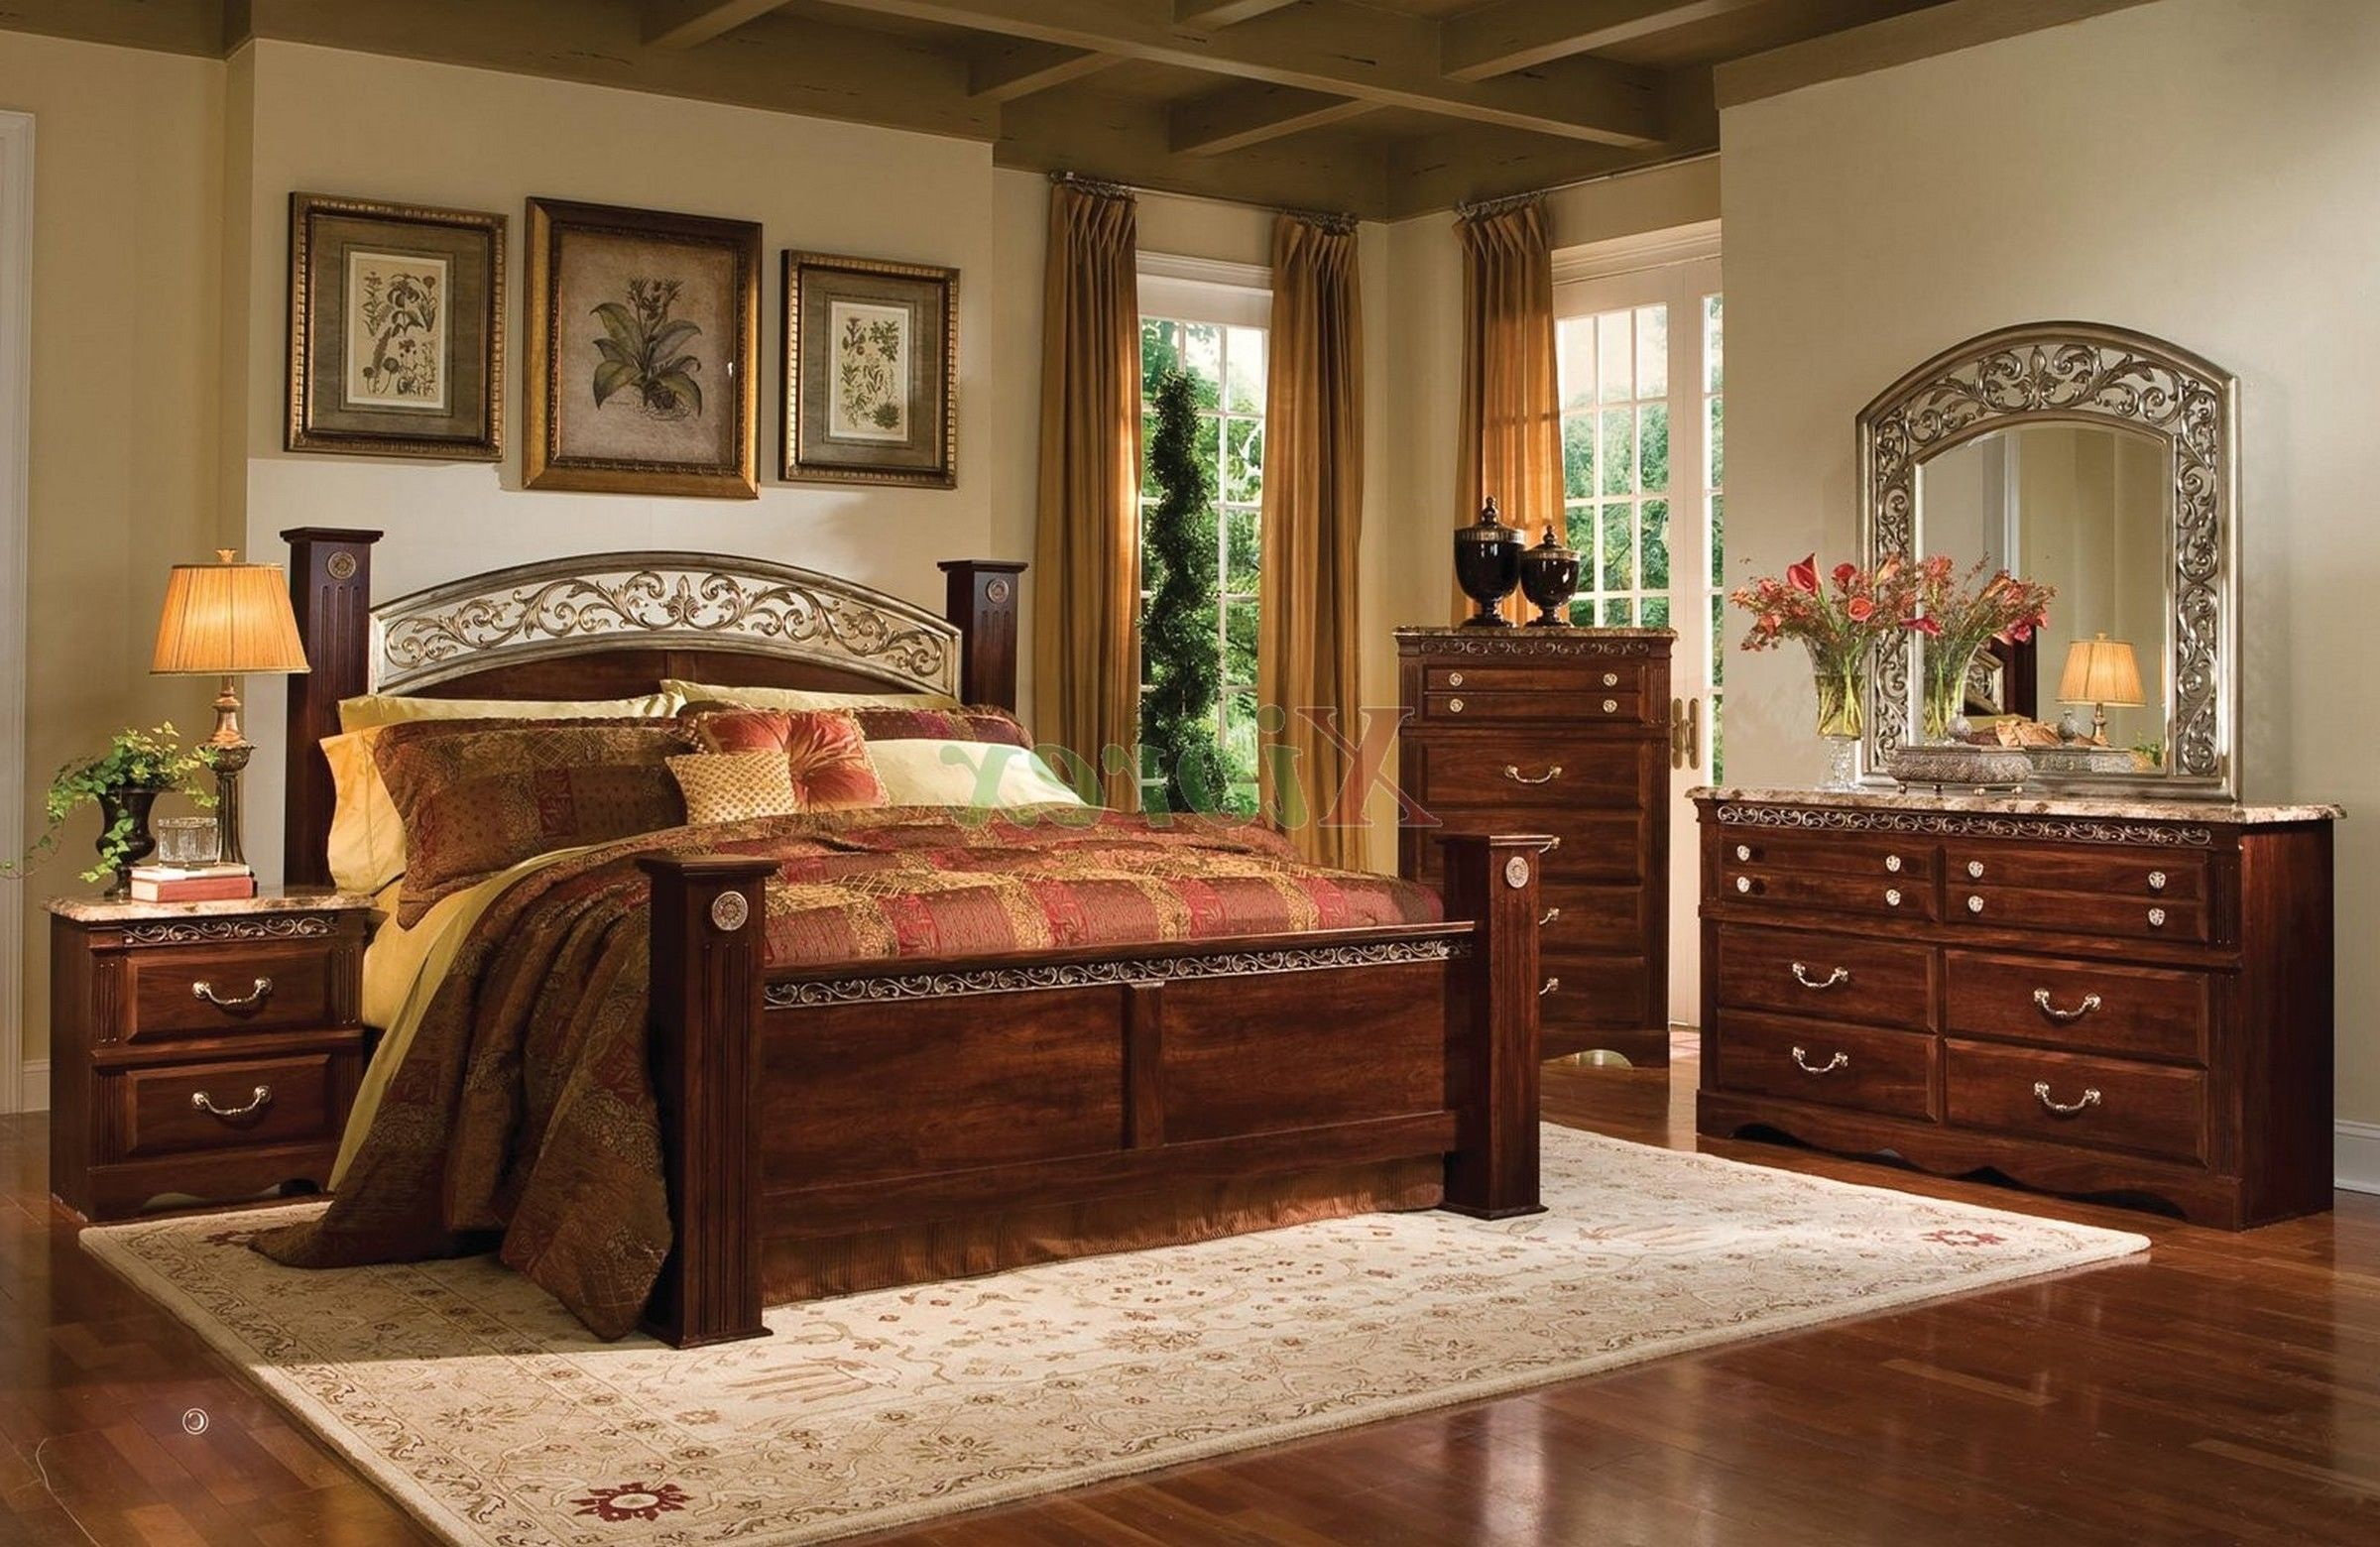 wood furniture bedroom design picture1 - Wooden Bedroom Design